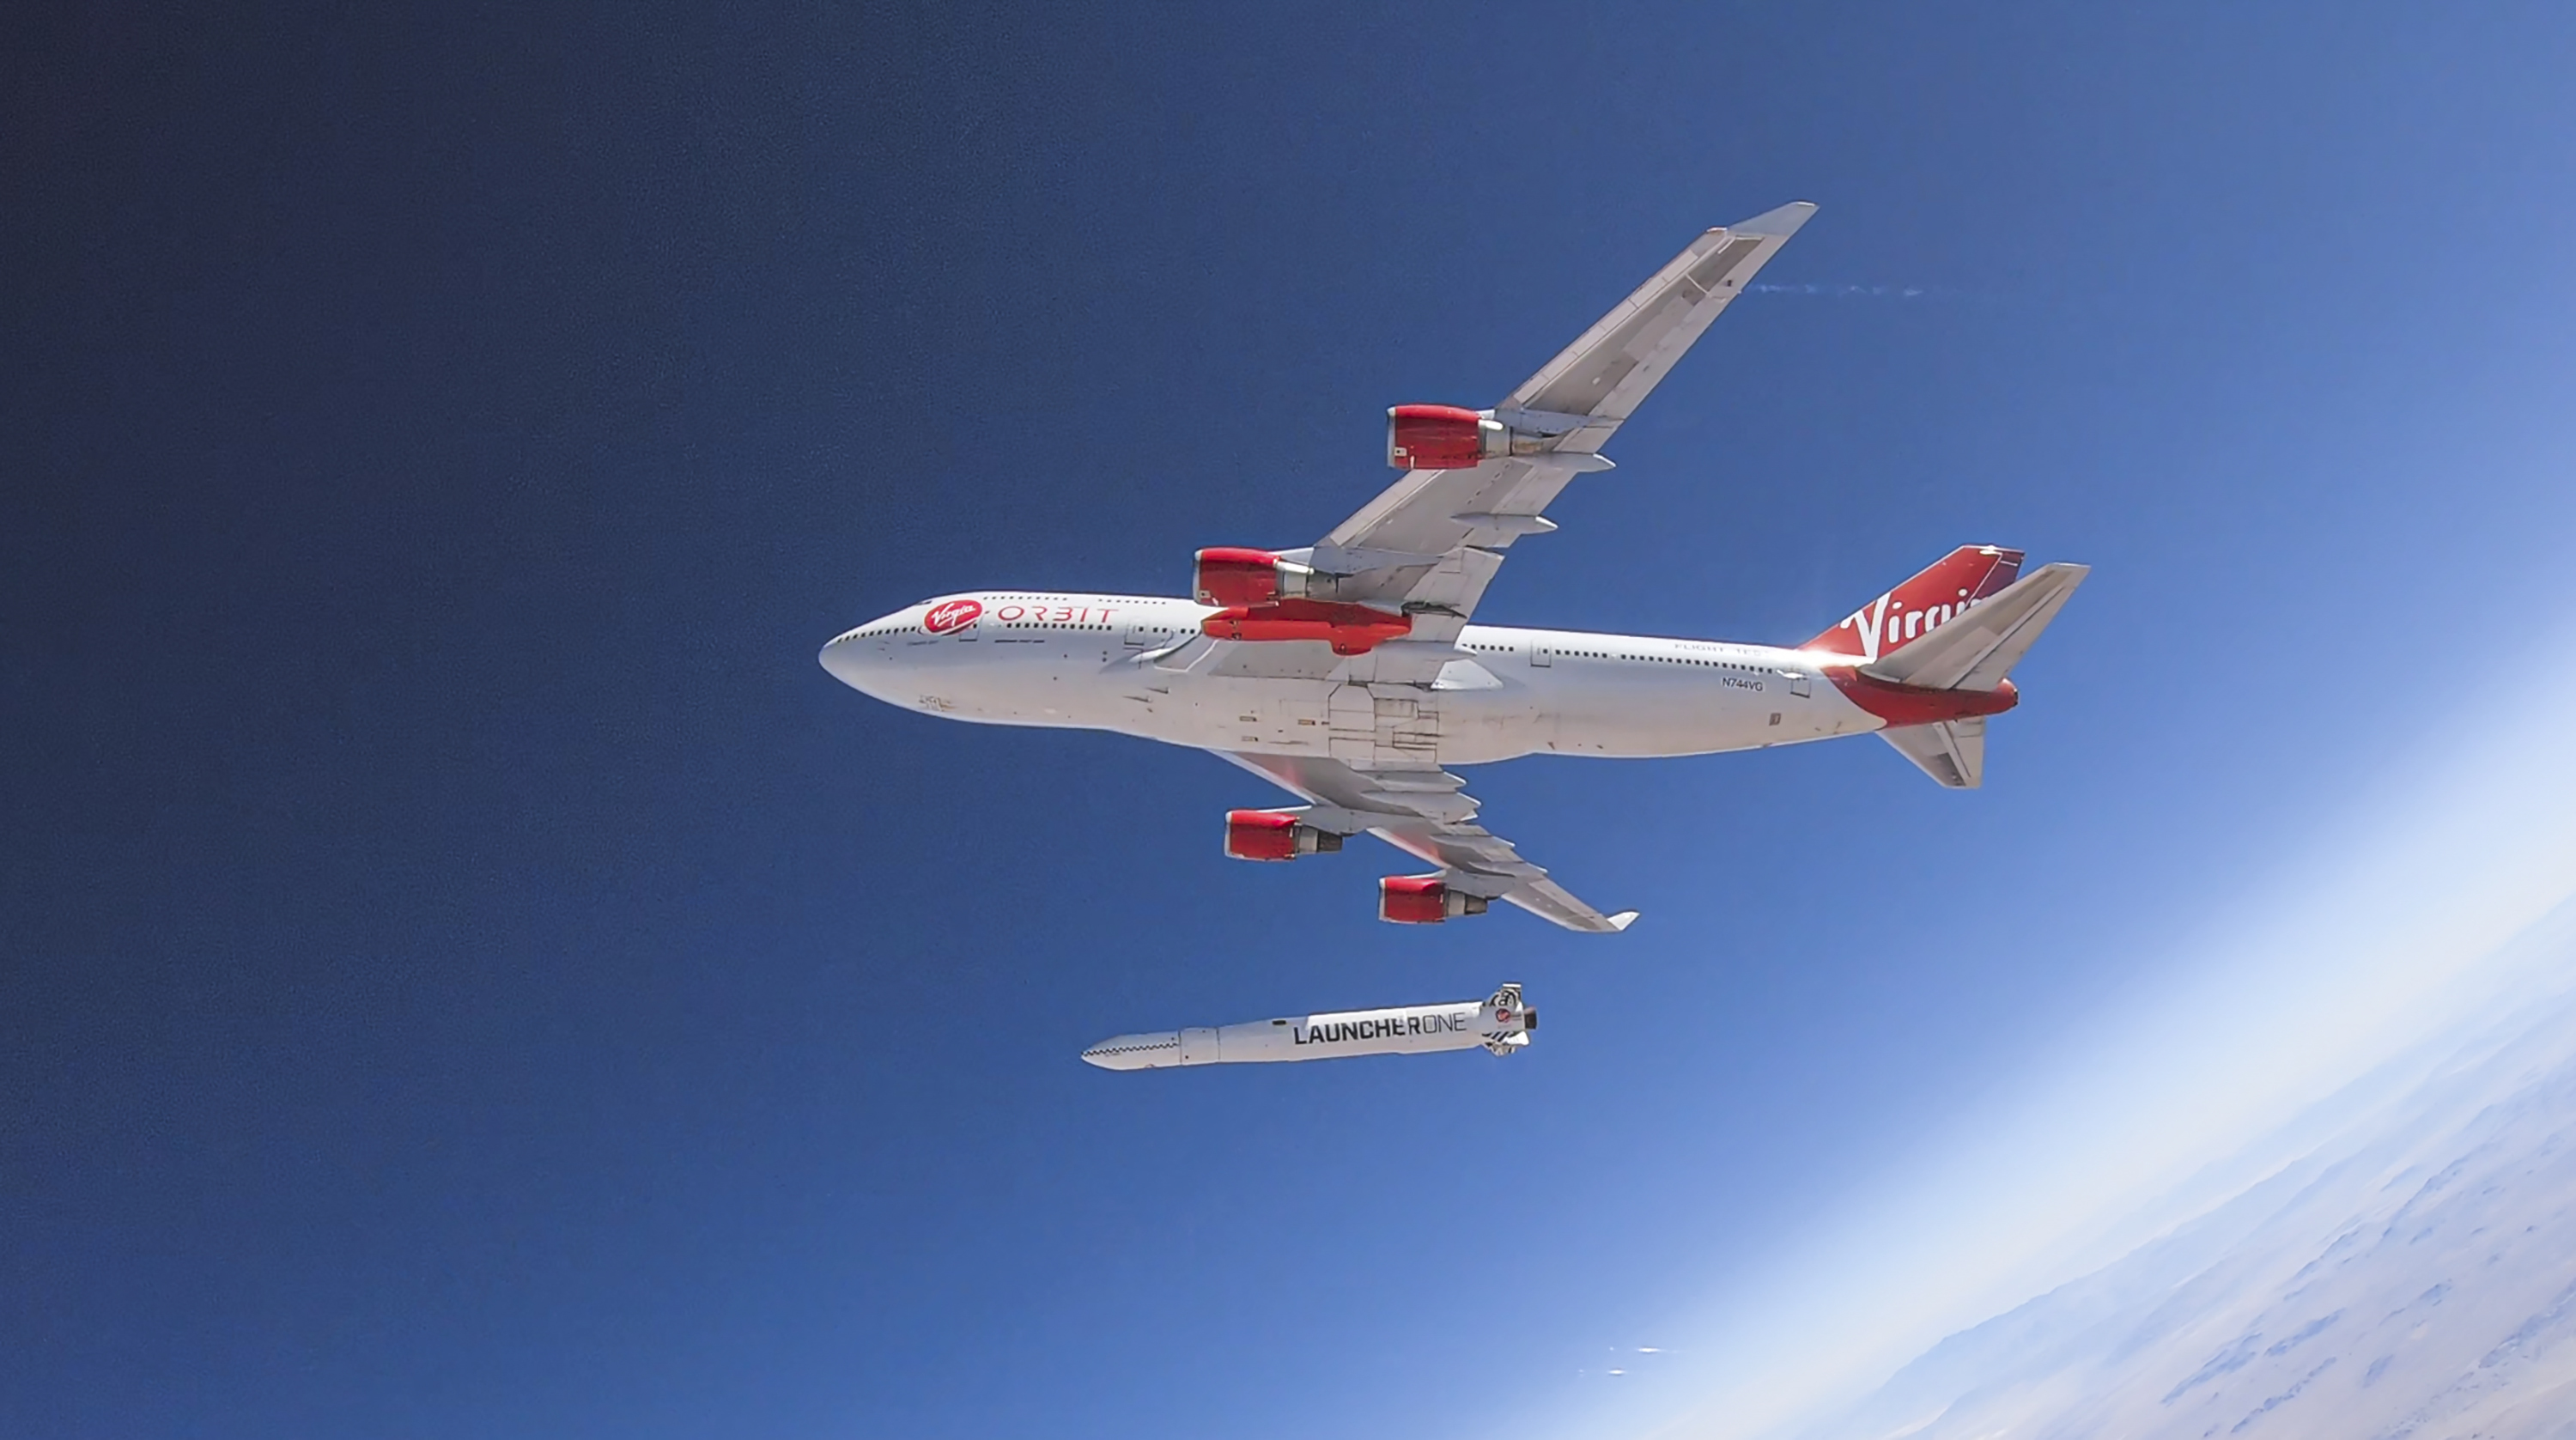 First launch of a rocket by Virgin Orbit, the company of billionaire Richard Branson, failed